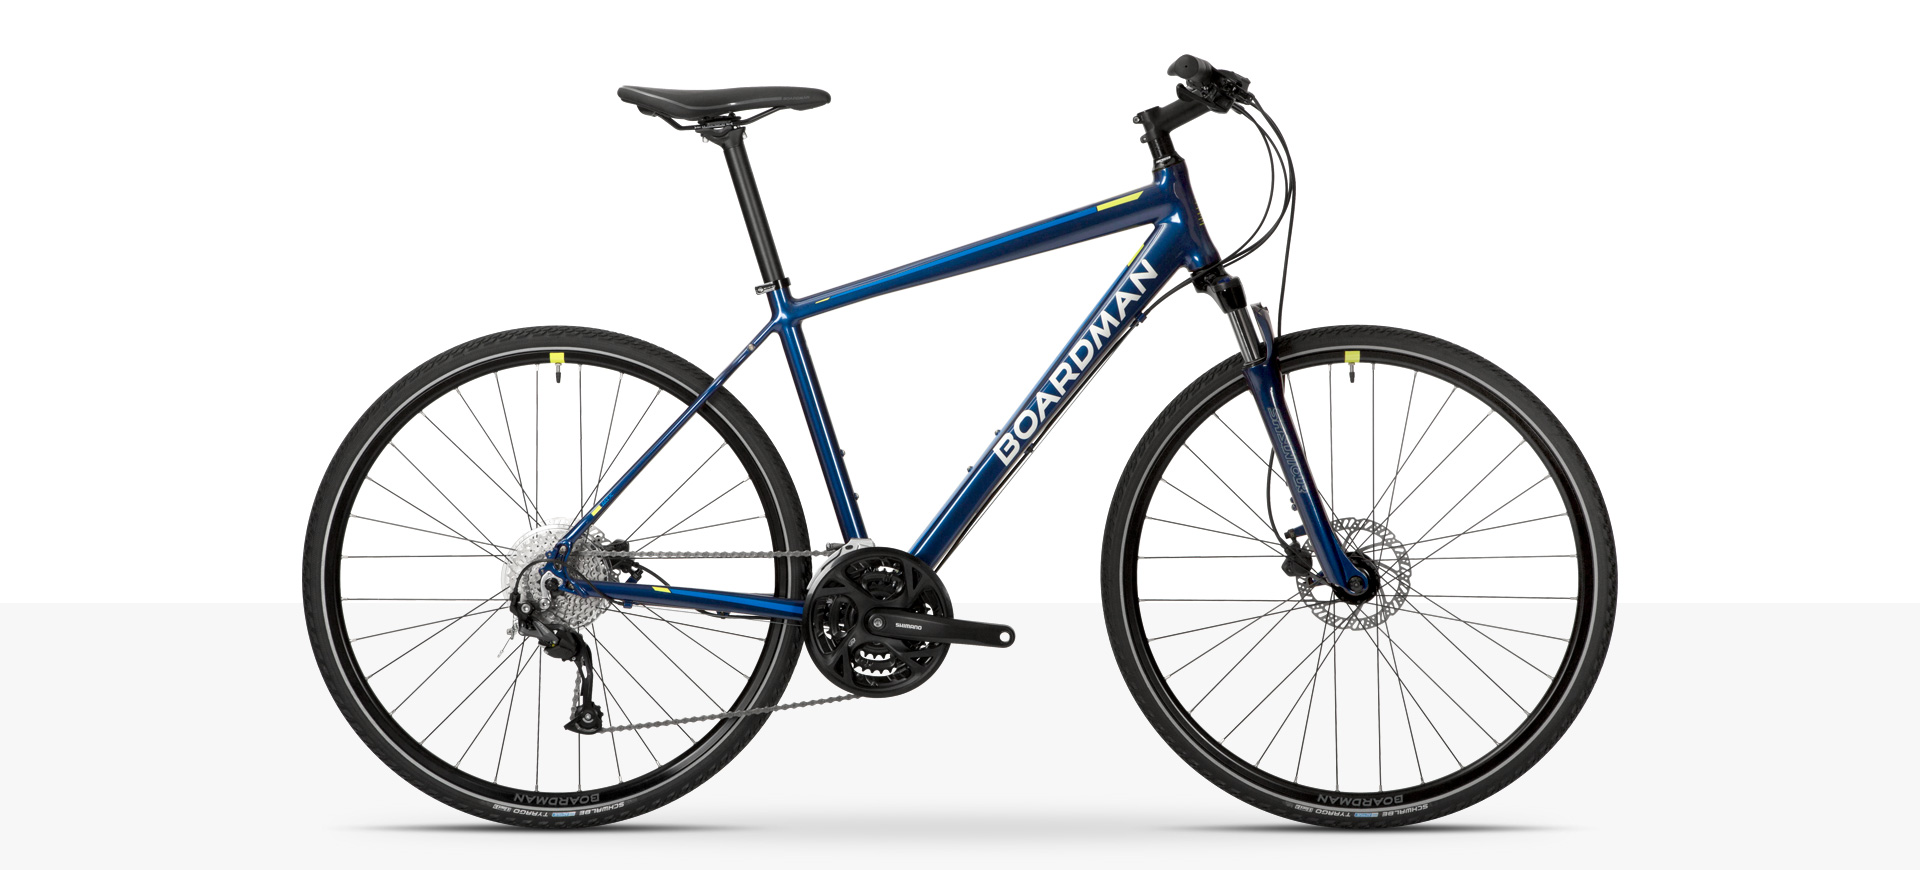 Boardman MTX 8.6 Mountain Bike in Blue